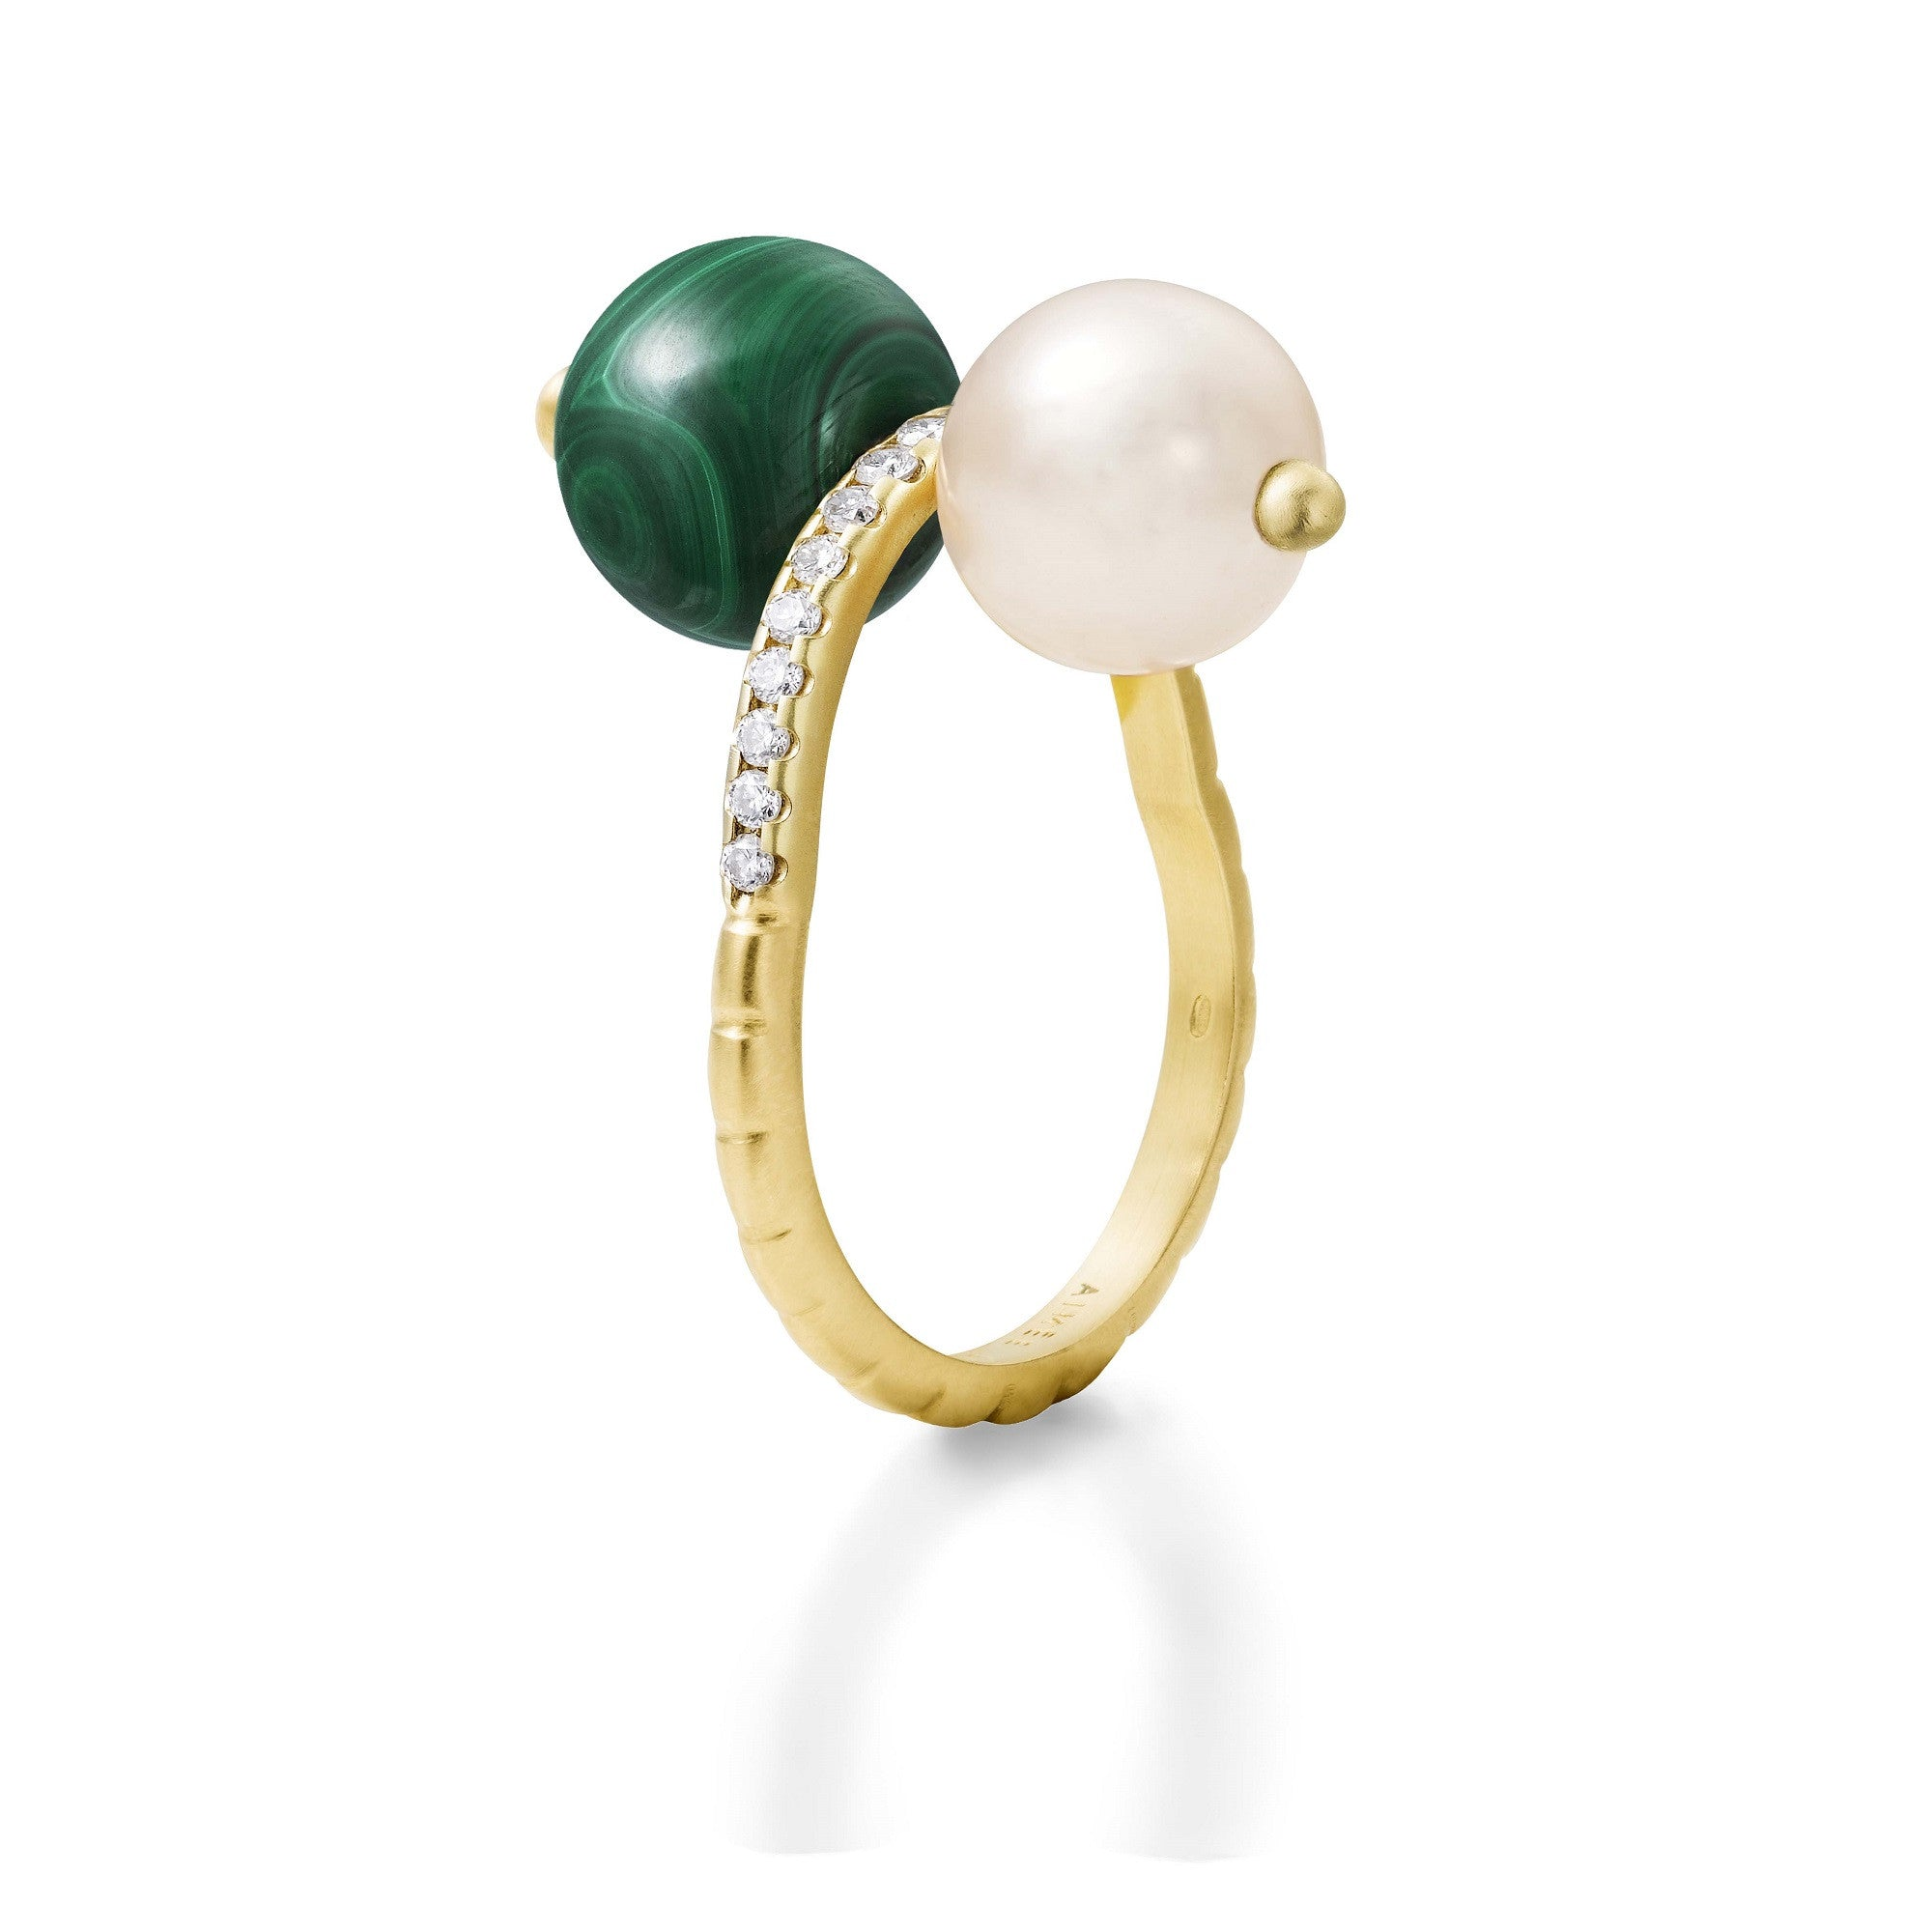 Bague Chance Or jaune, Perle, Malachite et Diamants